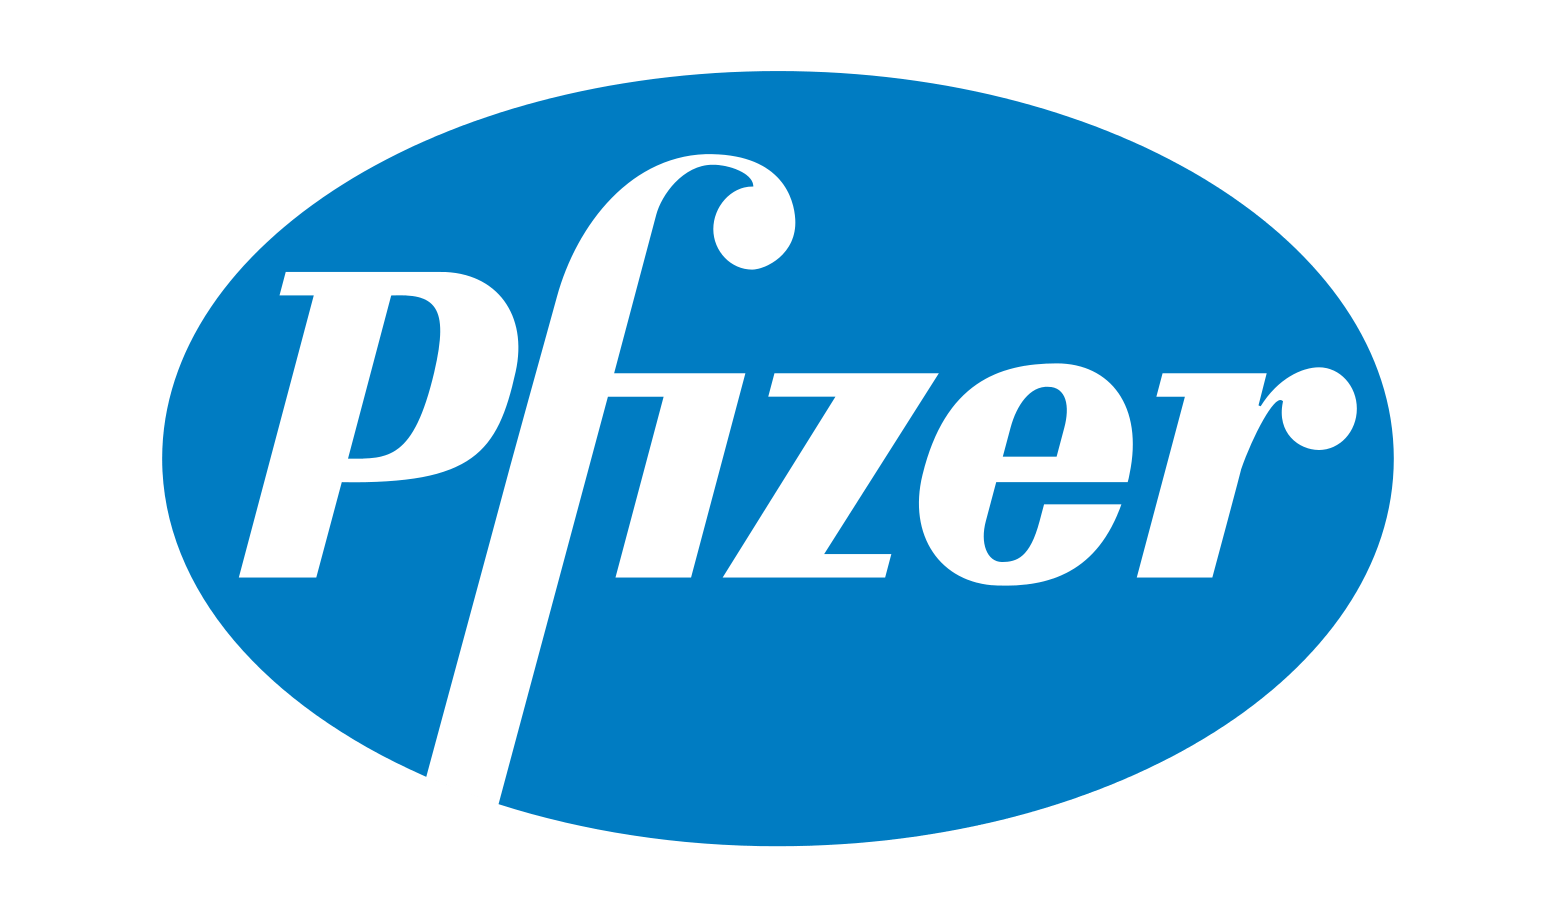 Pfizer - Enabling Expansion